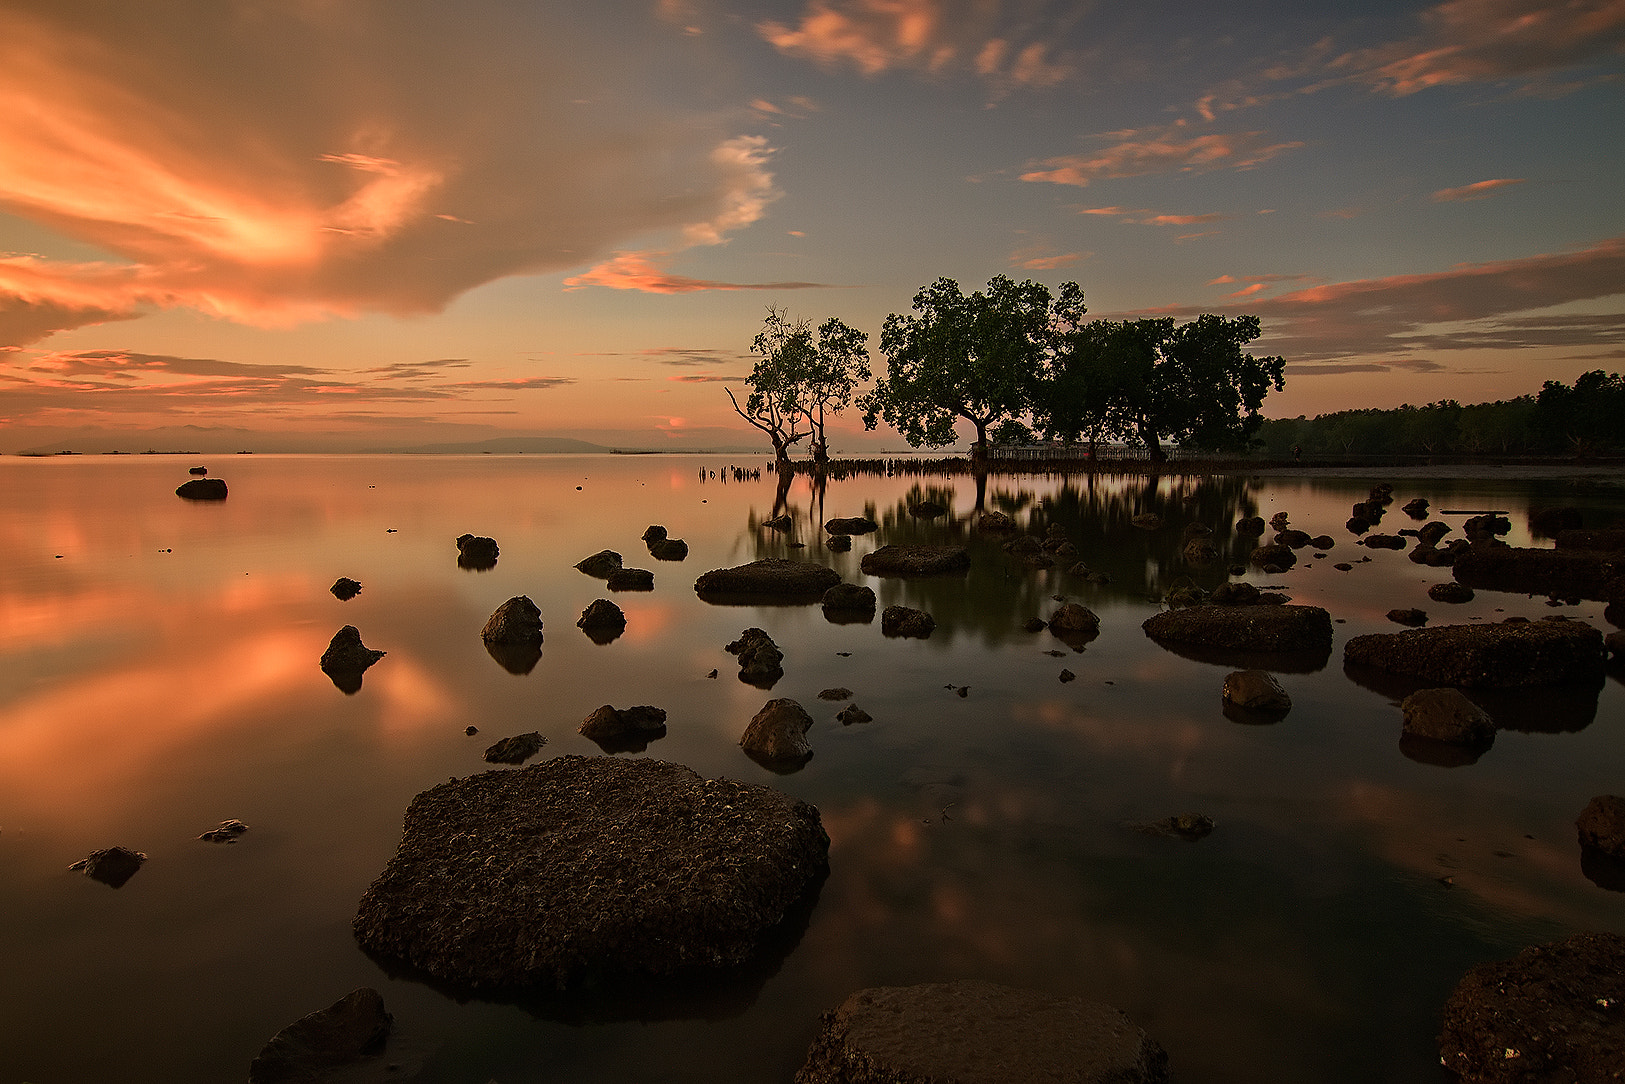 Photograph Natural Harmony by Hector Quiambao on 500px